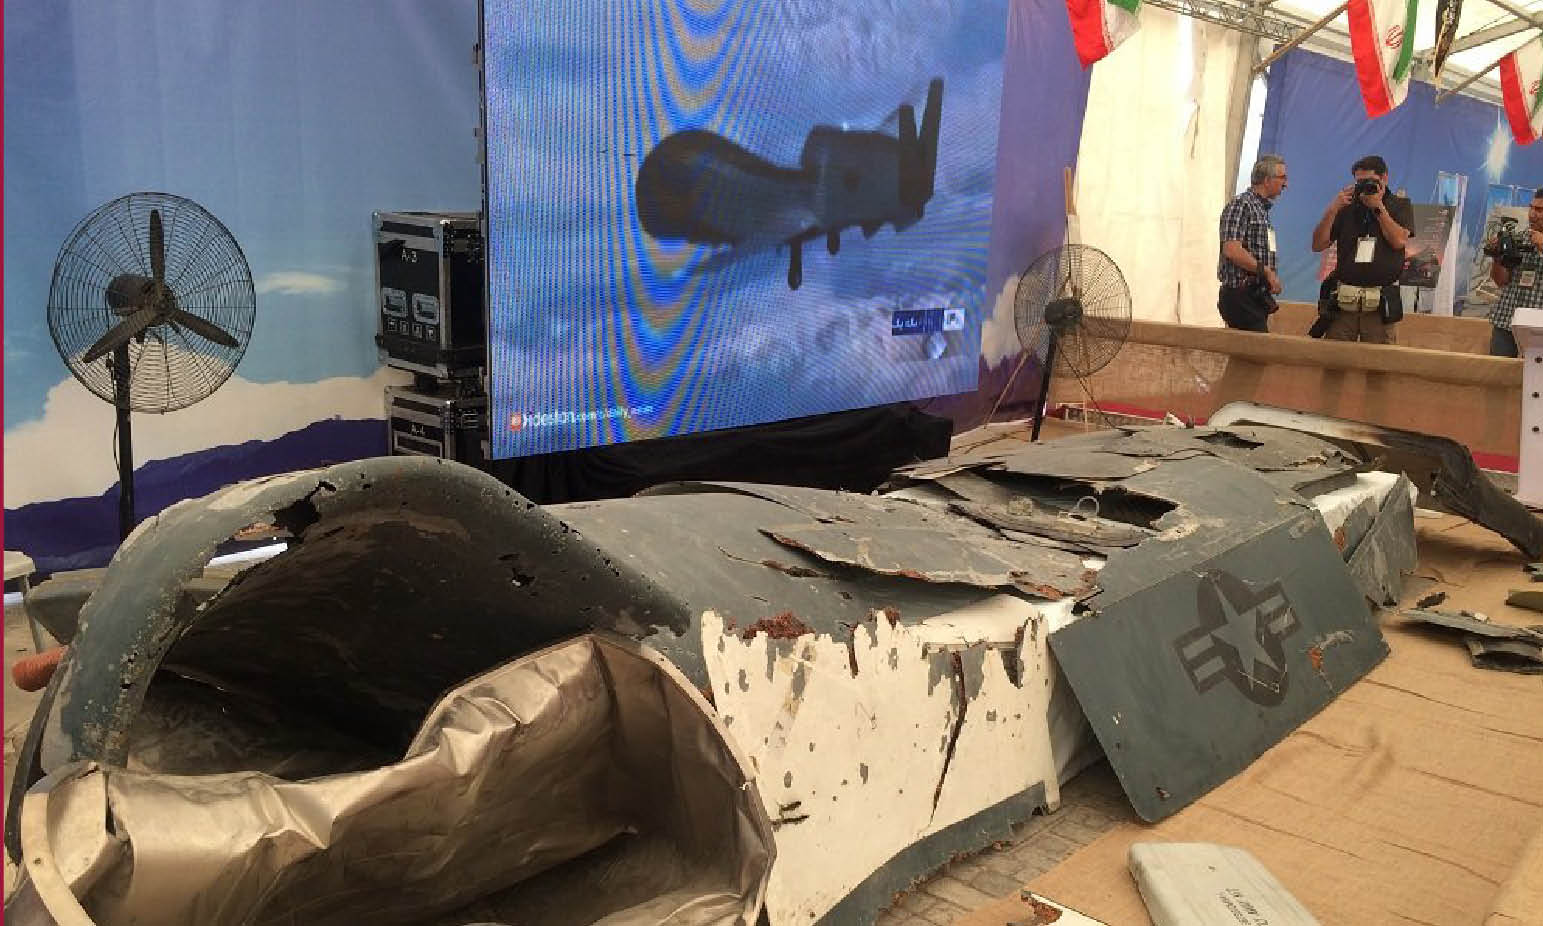 ORIGINAL WAR'S SHOW IN IRAN: IN EXHIBITION THE US & ISRAELI DRONES DOWNED